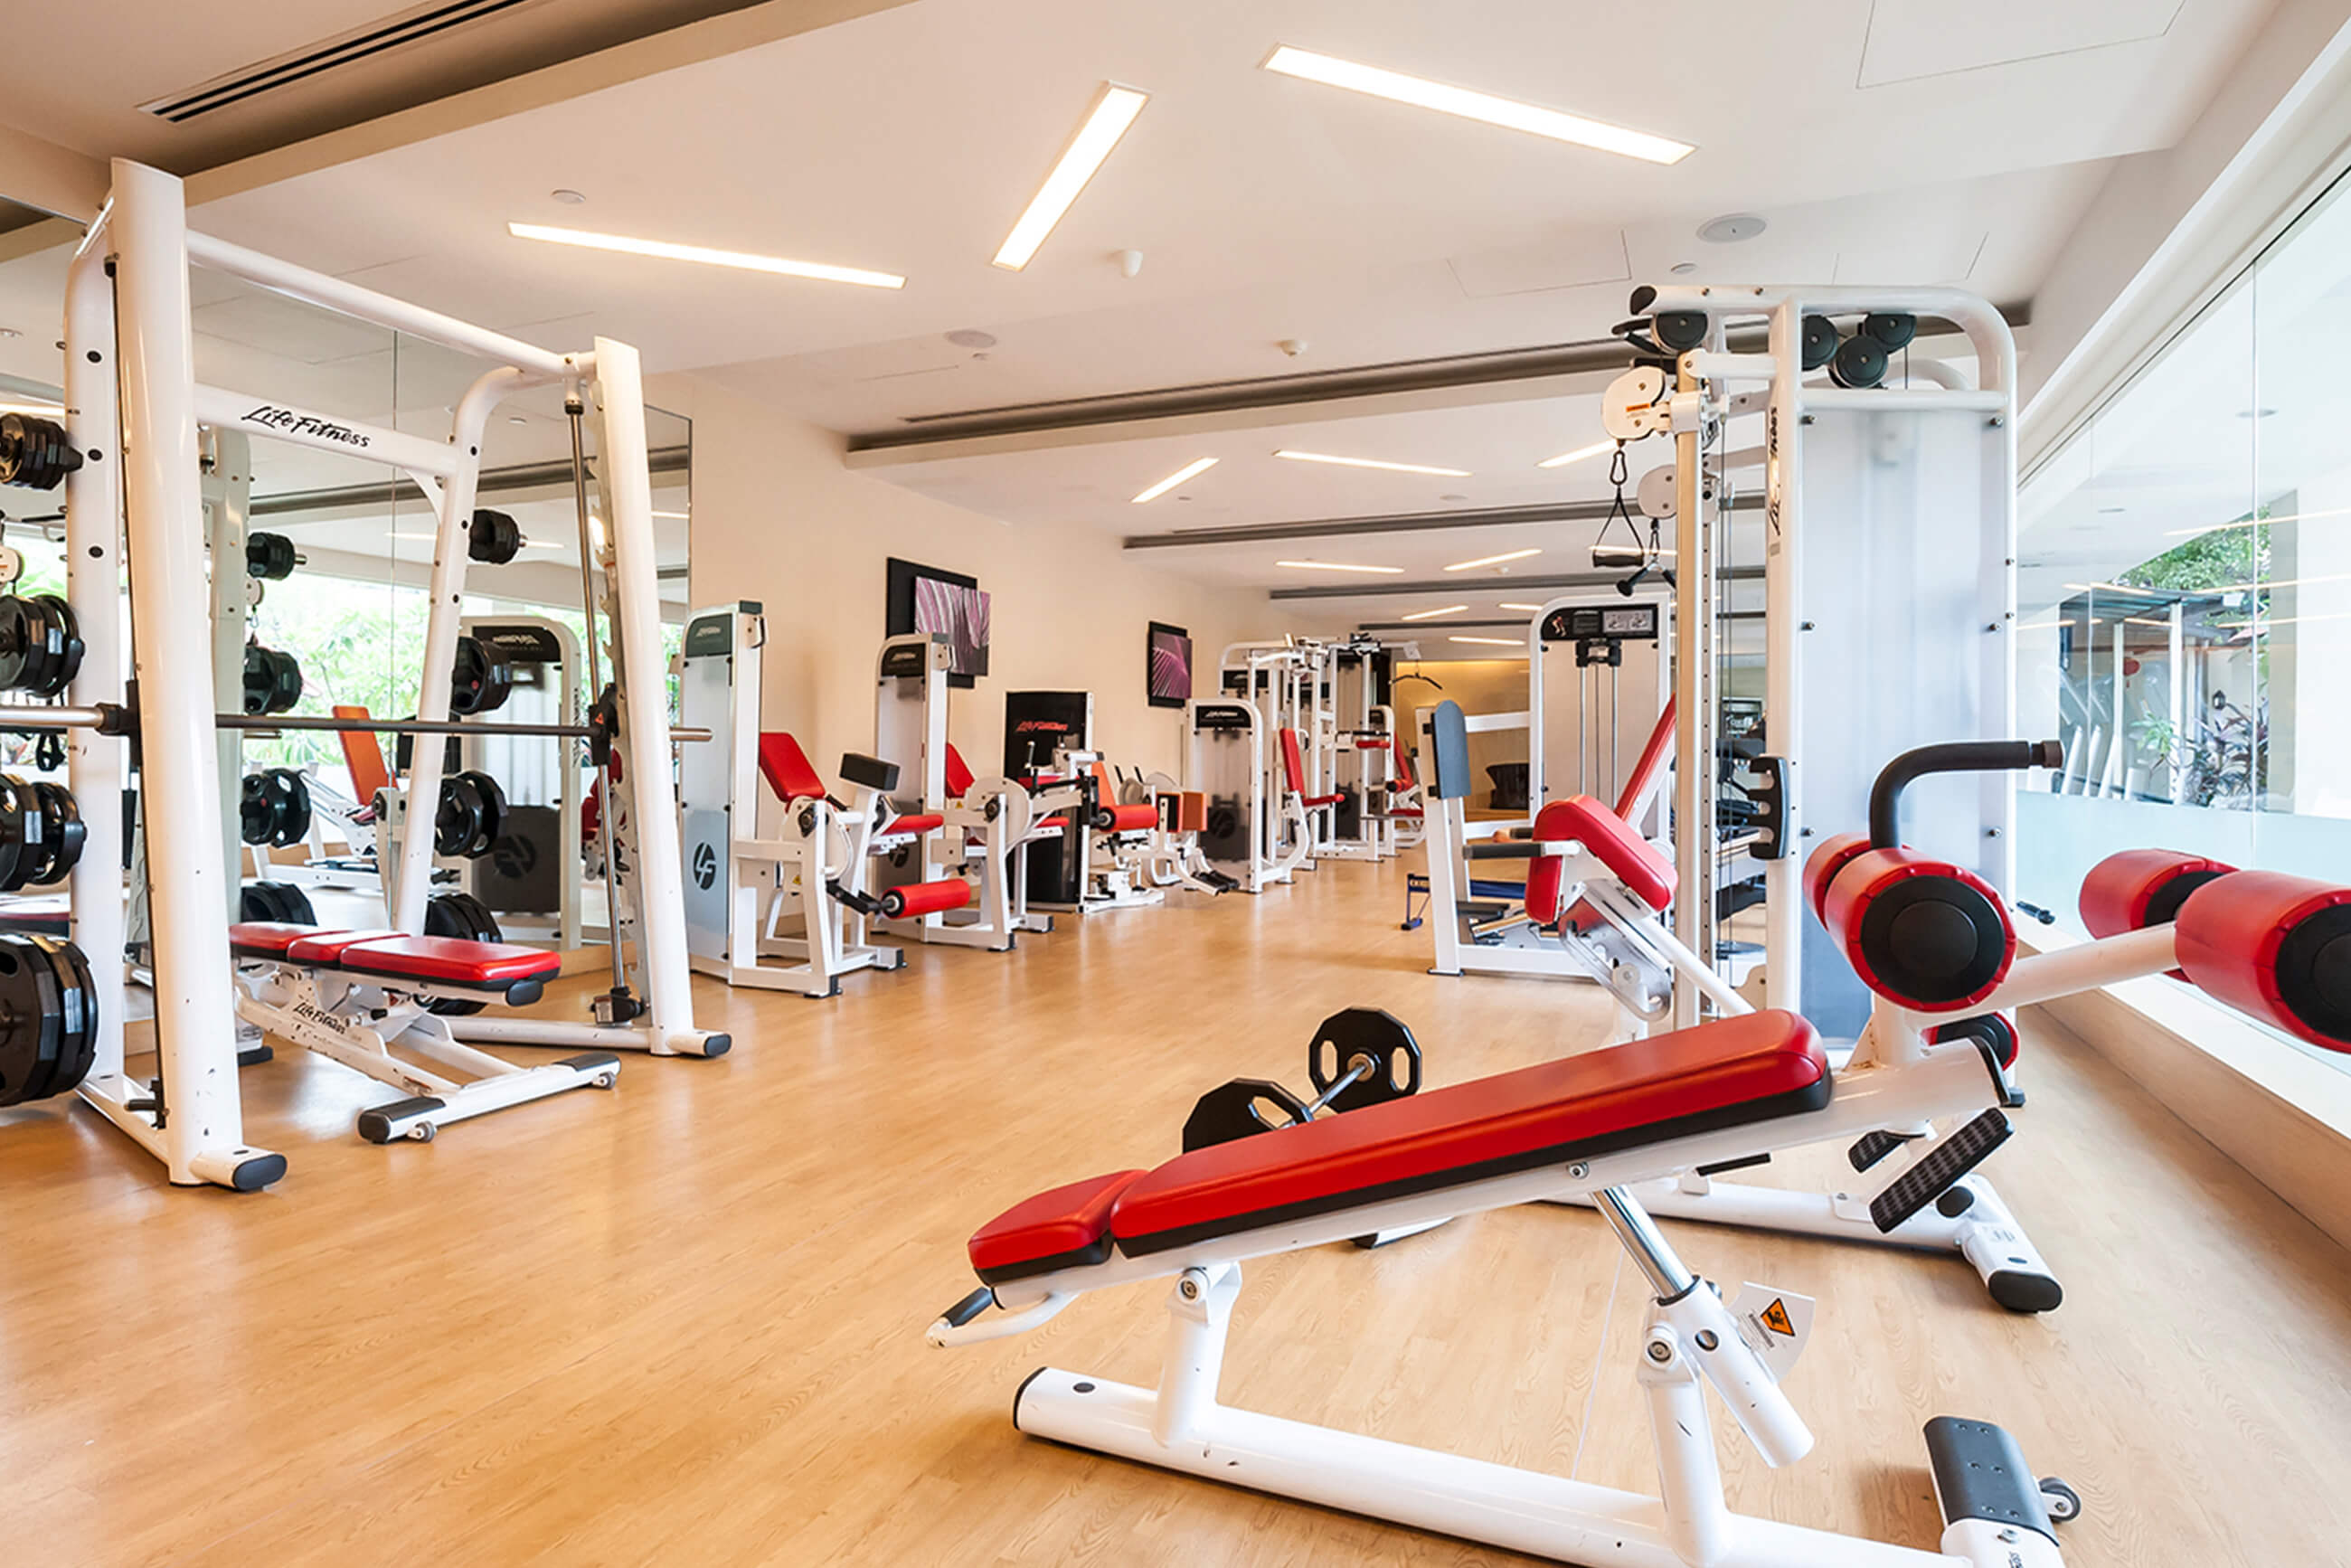 https://bubo.sk/uploads/galleries/5061/jen_tanglin_gym_at-our-gym.jpg